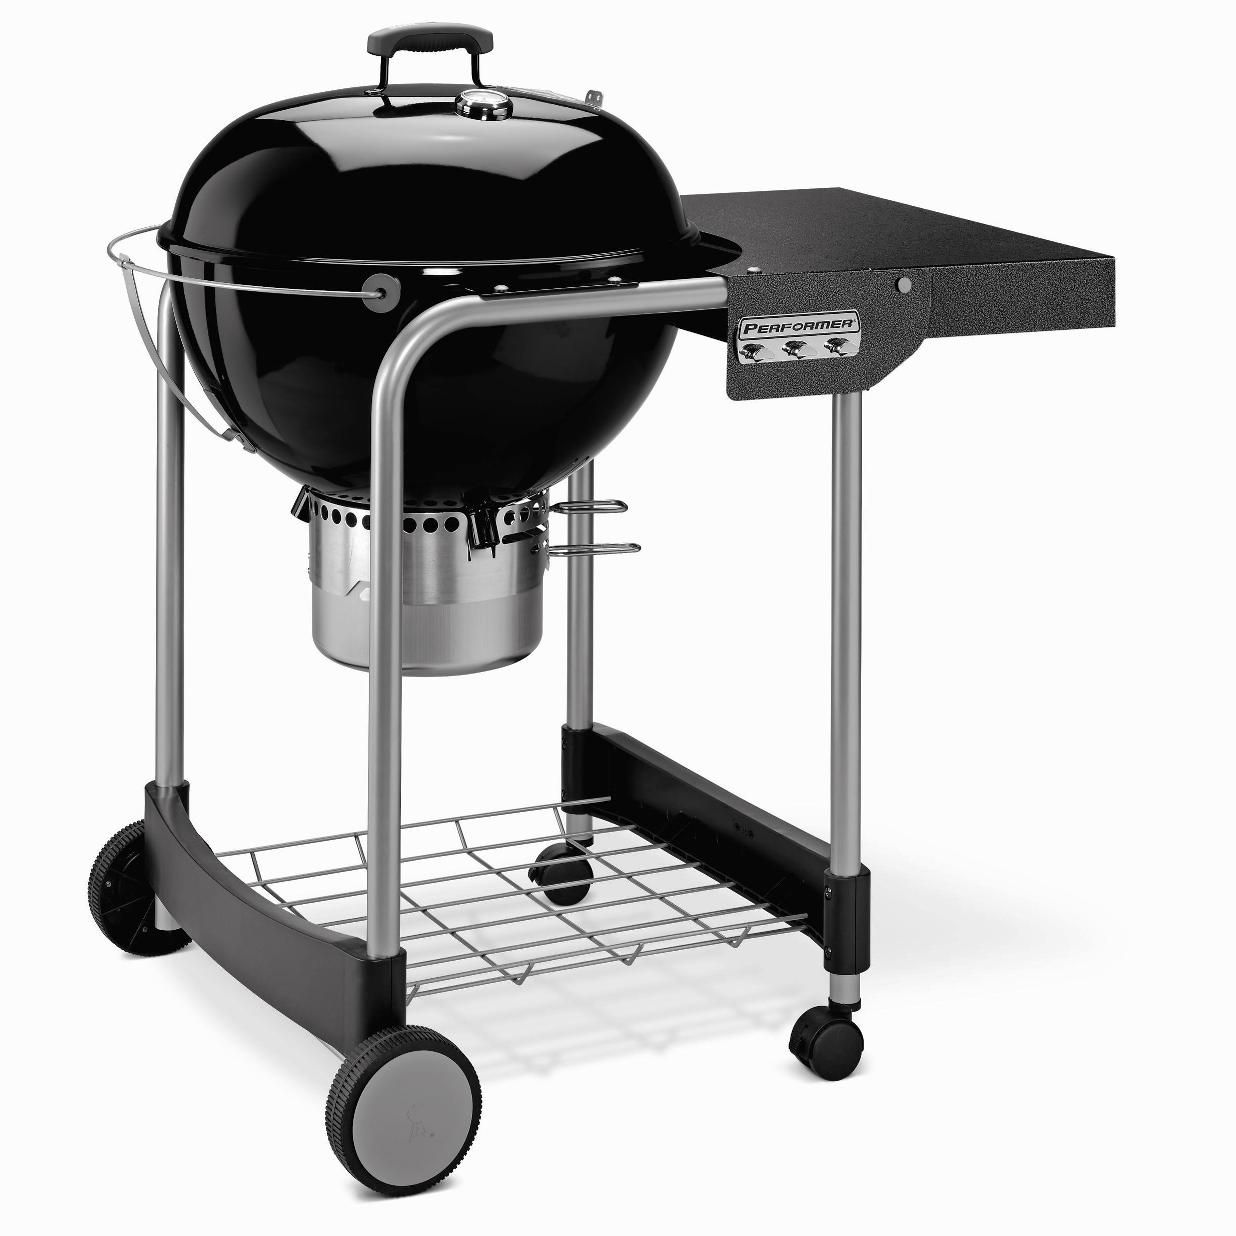 Weber Performer Charcoal Grill Review Weber Charcoal Grill Charcoal Grill Gas Barbecue Grill